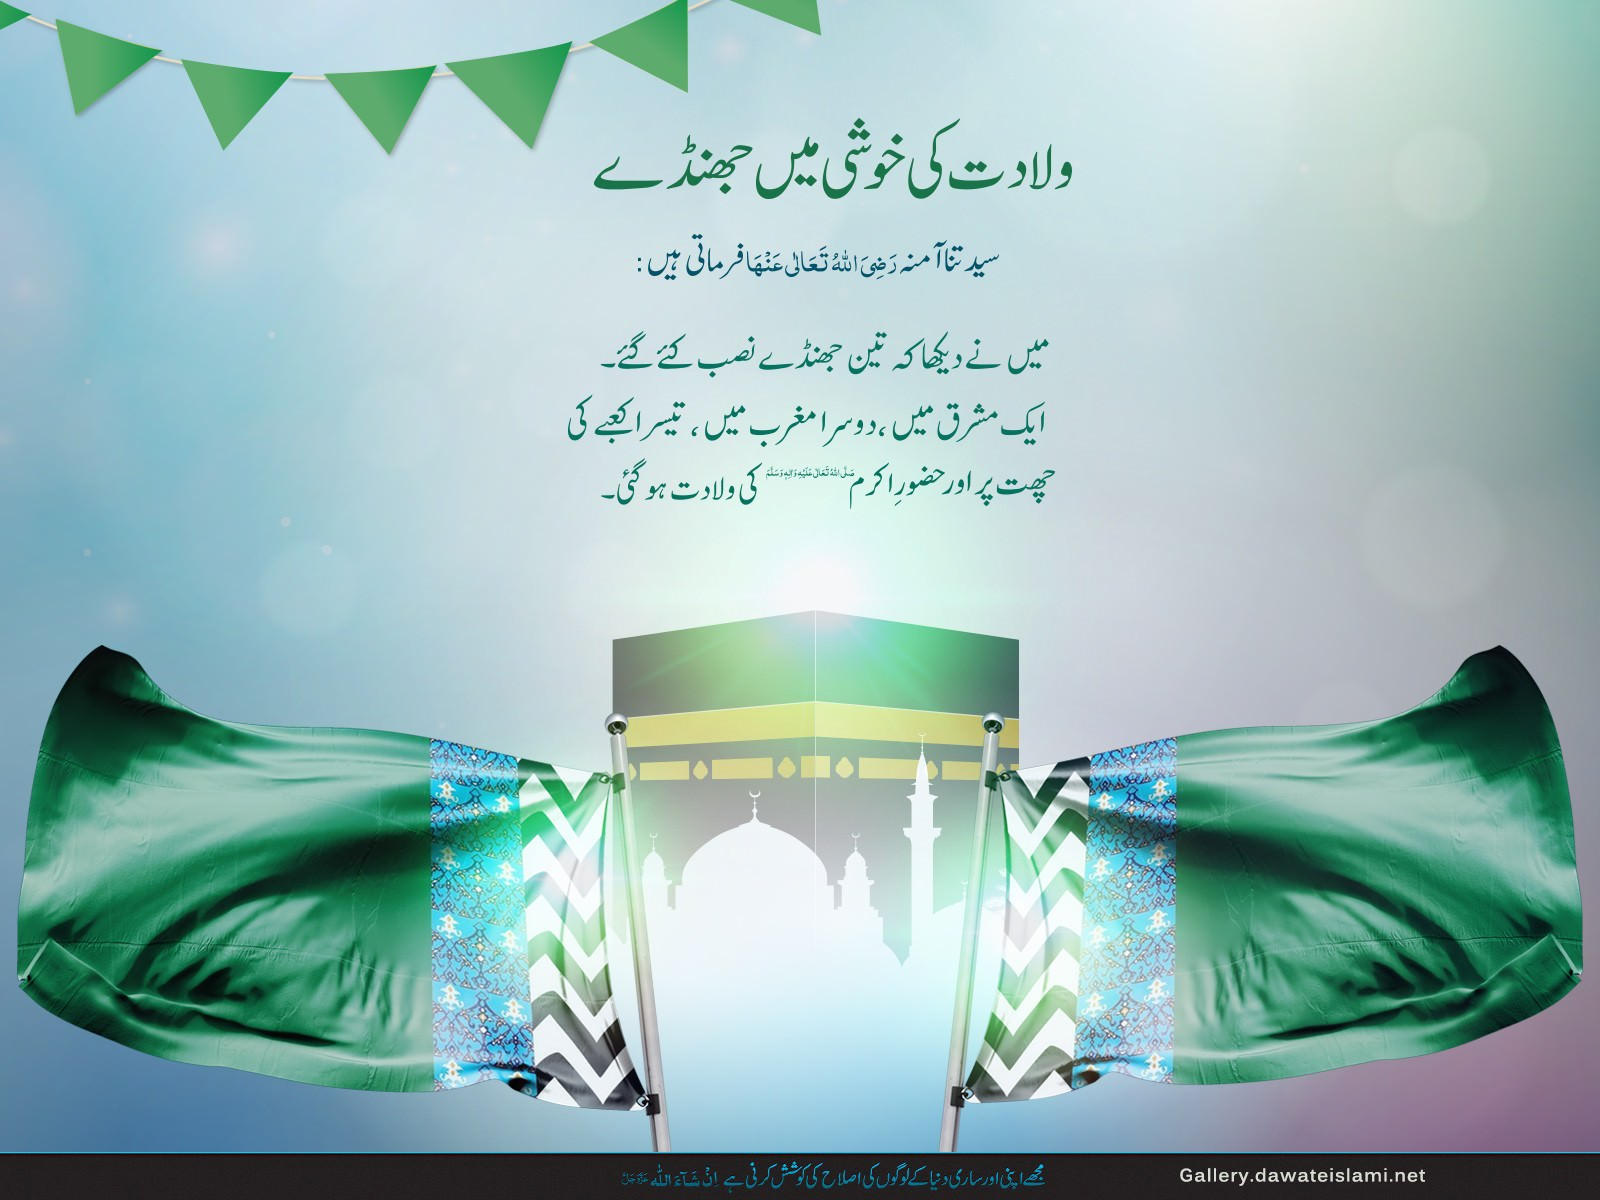 Wiladat ki khushi main jhanday- Rabi un noor wallpaper